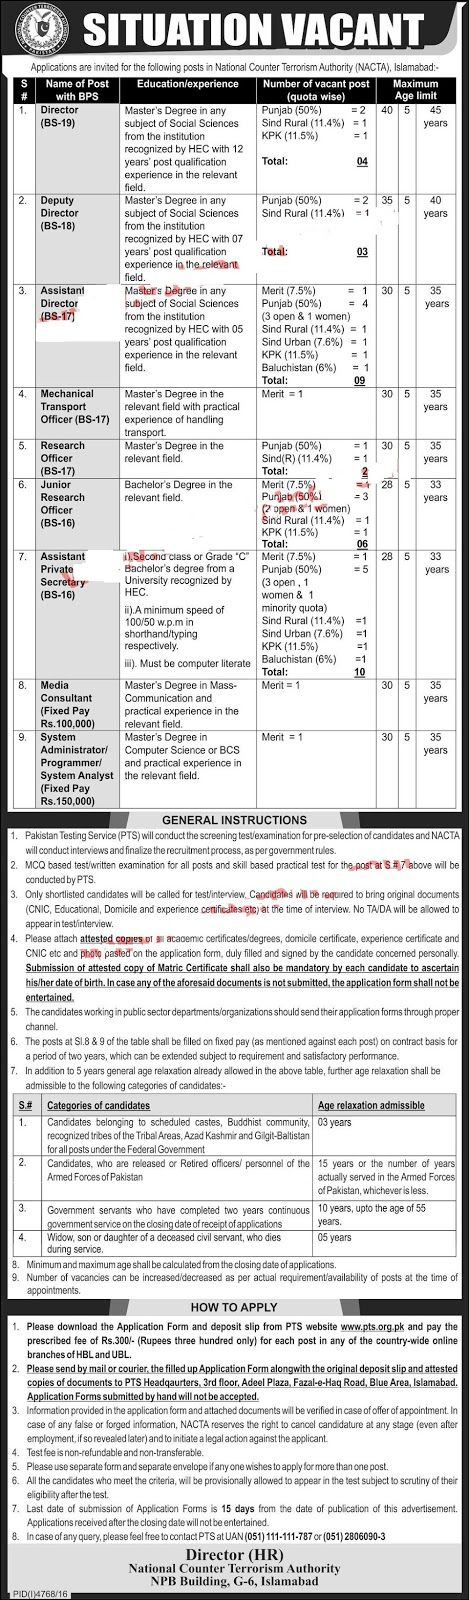 National Counter Terrorism Authority Jobs 2017 NACTA Islamabad Latest  National Counter Terrorism Authority (NACTA) Islamabad invites applications for various vacant posts through Pakistan testing Service (www.pts.org.pk).Advertised positions are Director Deputy Director Assistant Director Mechanical Transport Officer Research Officer Junior Research Officer Assistant Private Secretary Media Consultant System Administrator System Analyst. Latest Advertisement Pblished in Daily Jang Express…